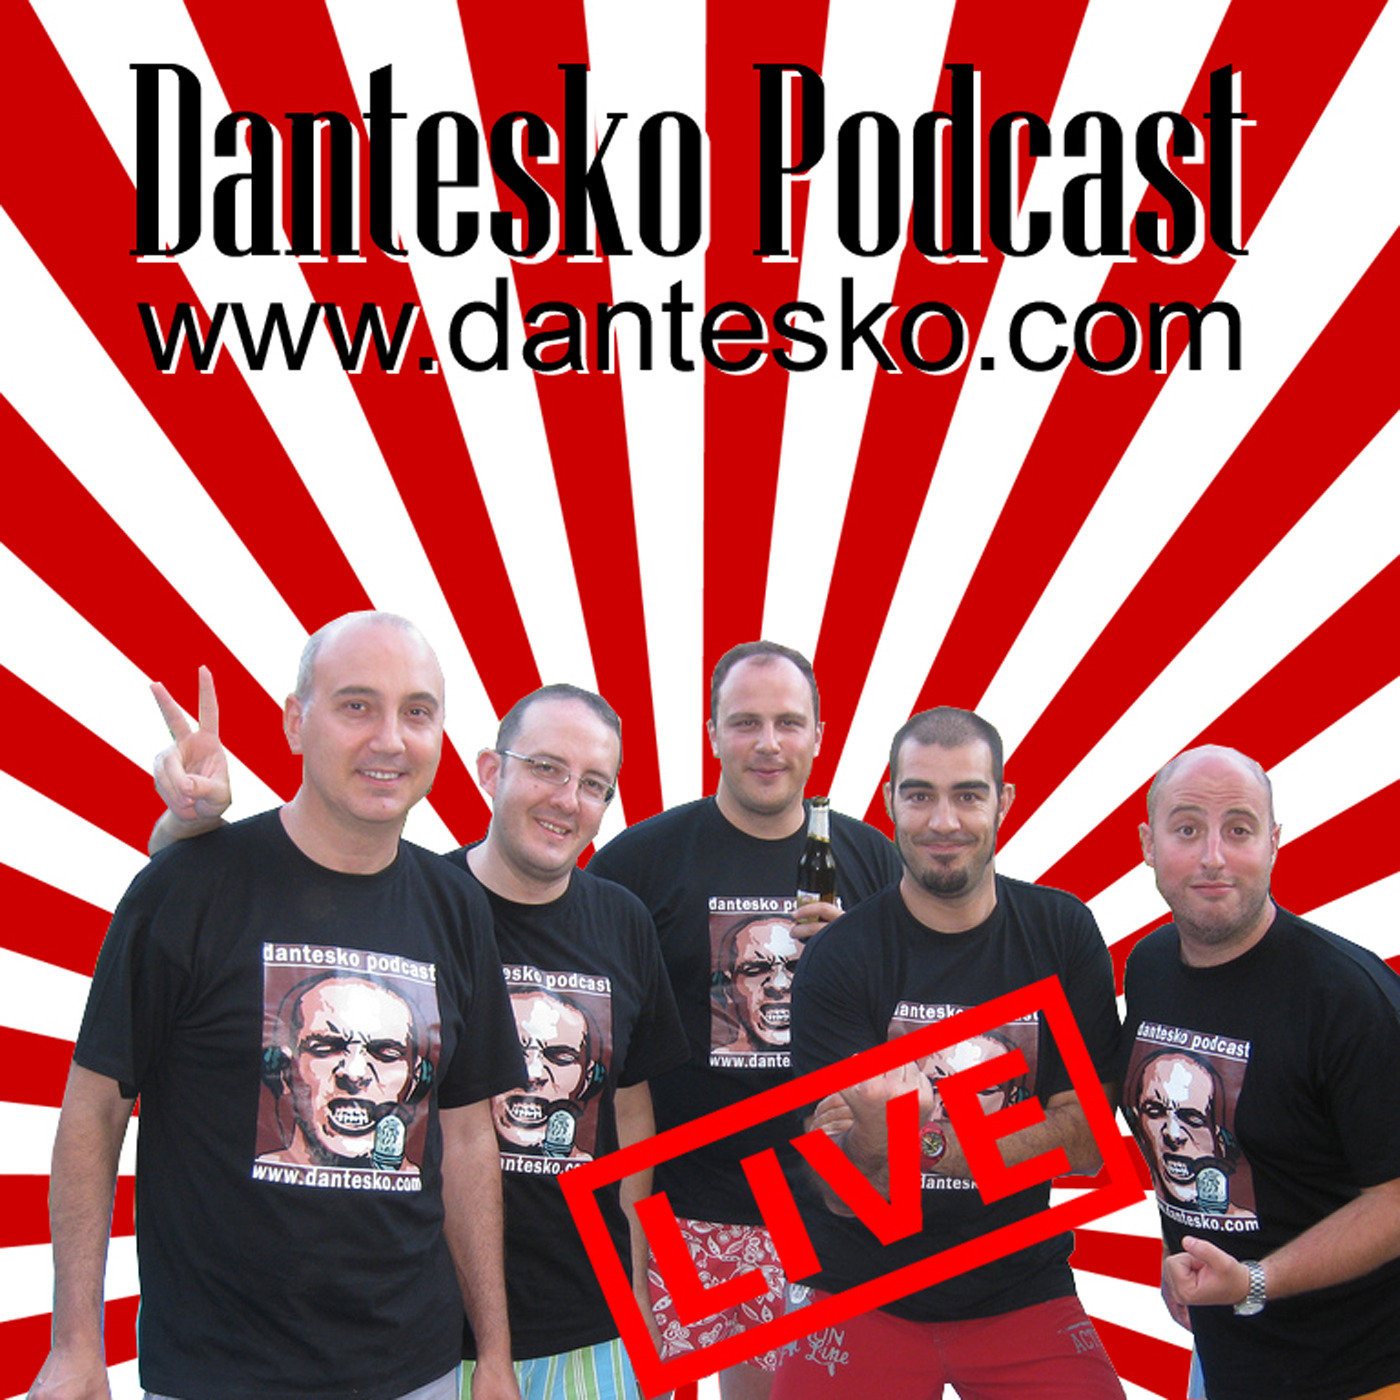 Logo de Dantesko Podcast